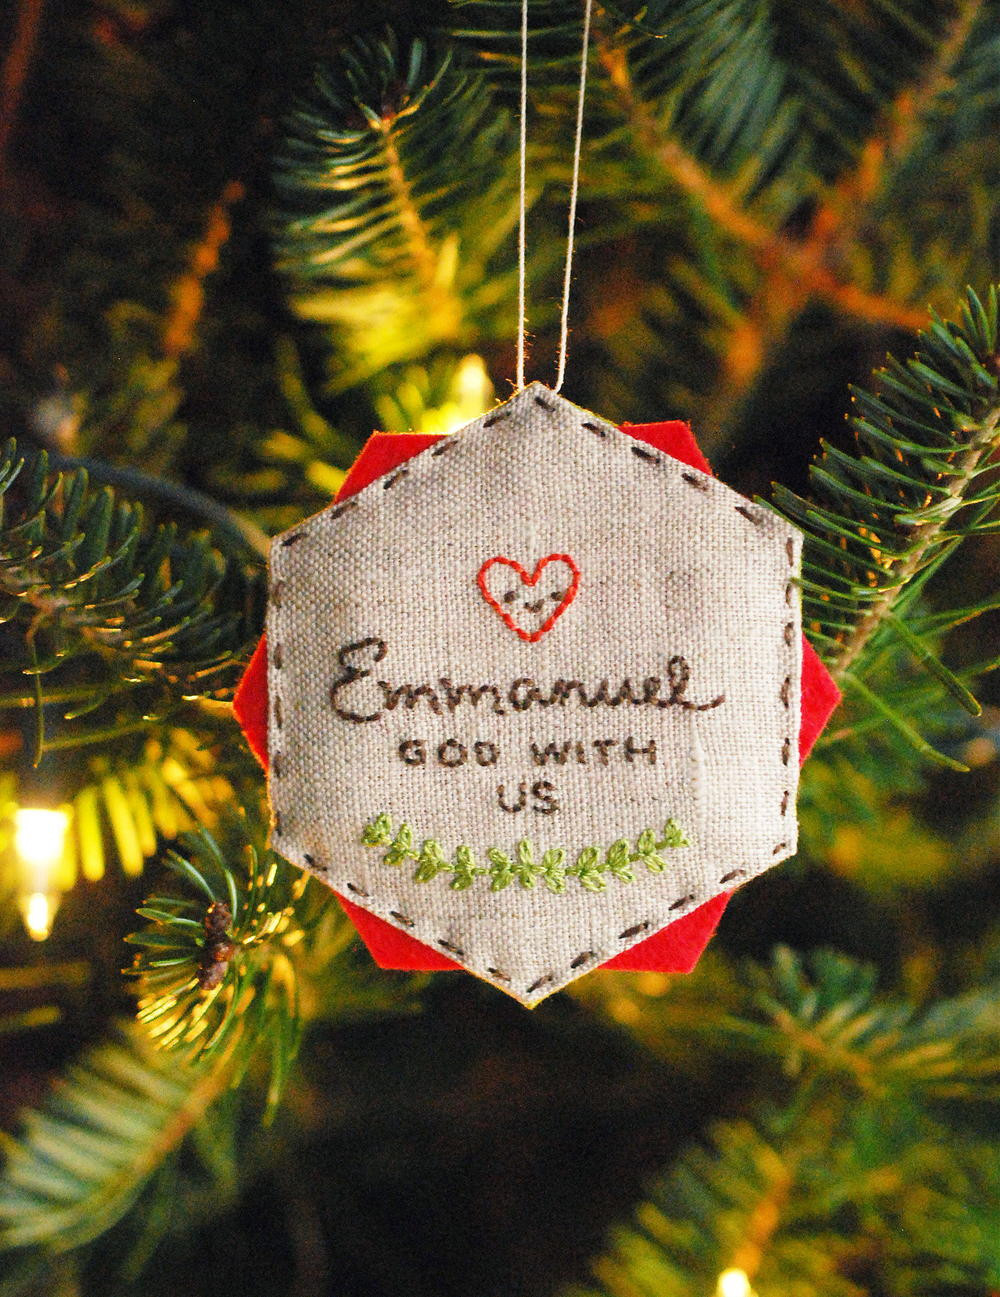 DIY Christmas Ornaments With Pictures  Easy Embroidered DIY Christmas Ornament